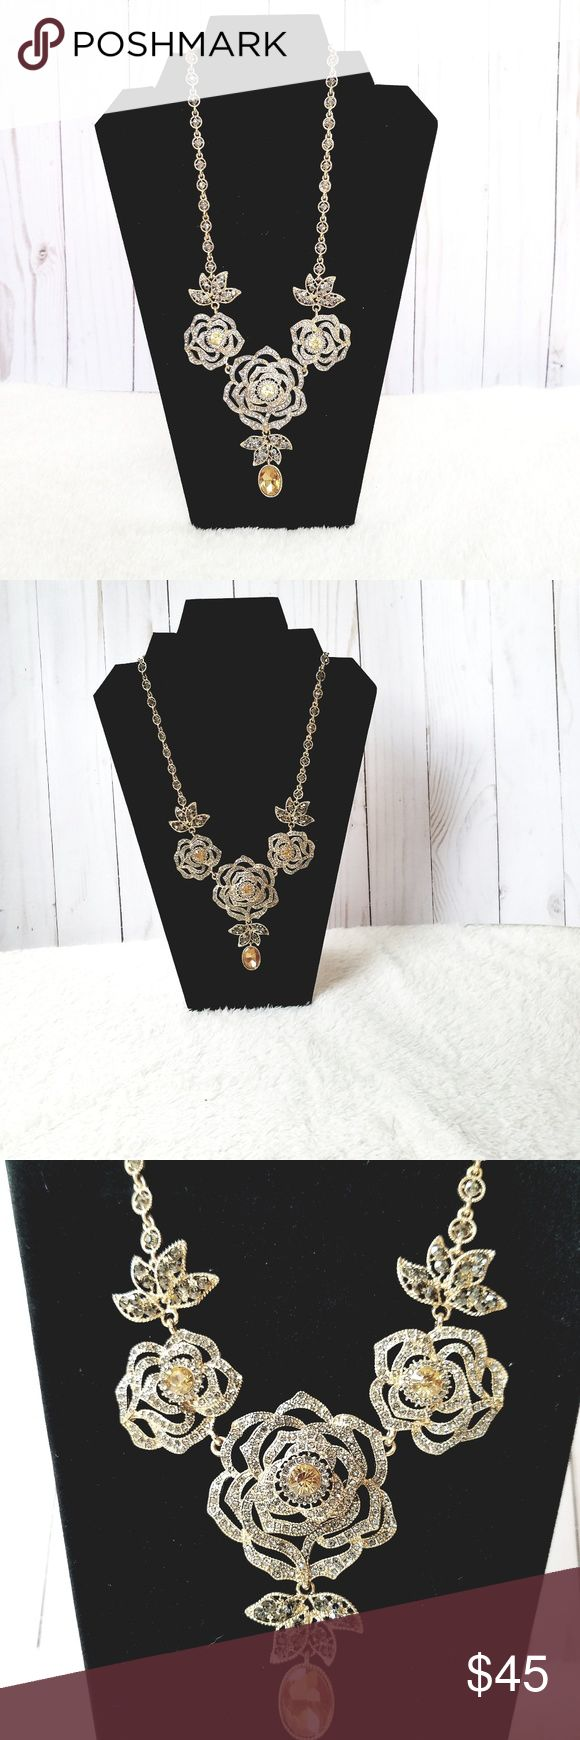 NATASHA ACCESORIES, GORGEOUS RHINESTONES NECKLACE Absolutely beautiful rhinestone necklace by Natasha. Features roses shaped in gold with 3 different color of  rhinestones, yellow, crystal and dark green. Perfect for graduation, wedding or any formal occasion. Total length: 13″.  Smoke and pet free. Offers always welcome!!! Acepto ofertas!!! ♡ BUNDLE & SAVE MORE ♡ Natasha Couture Jewelry Necklaces